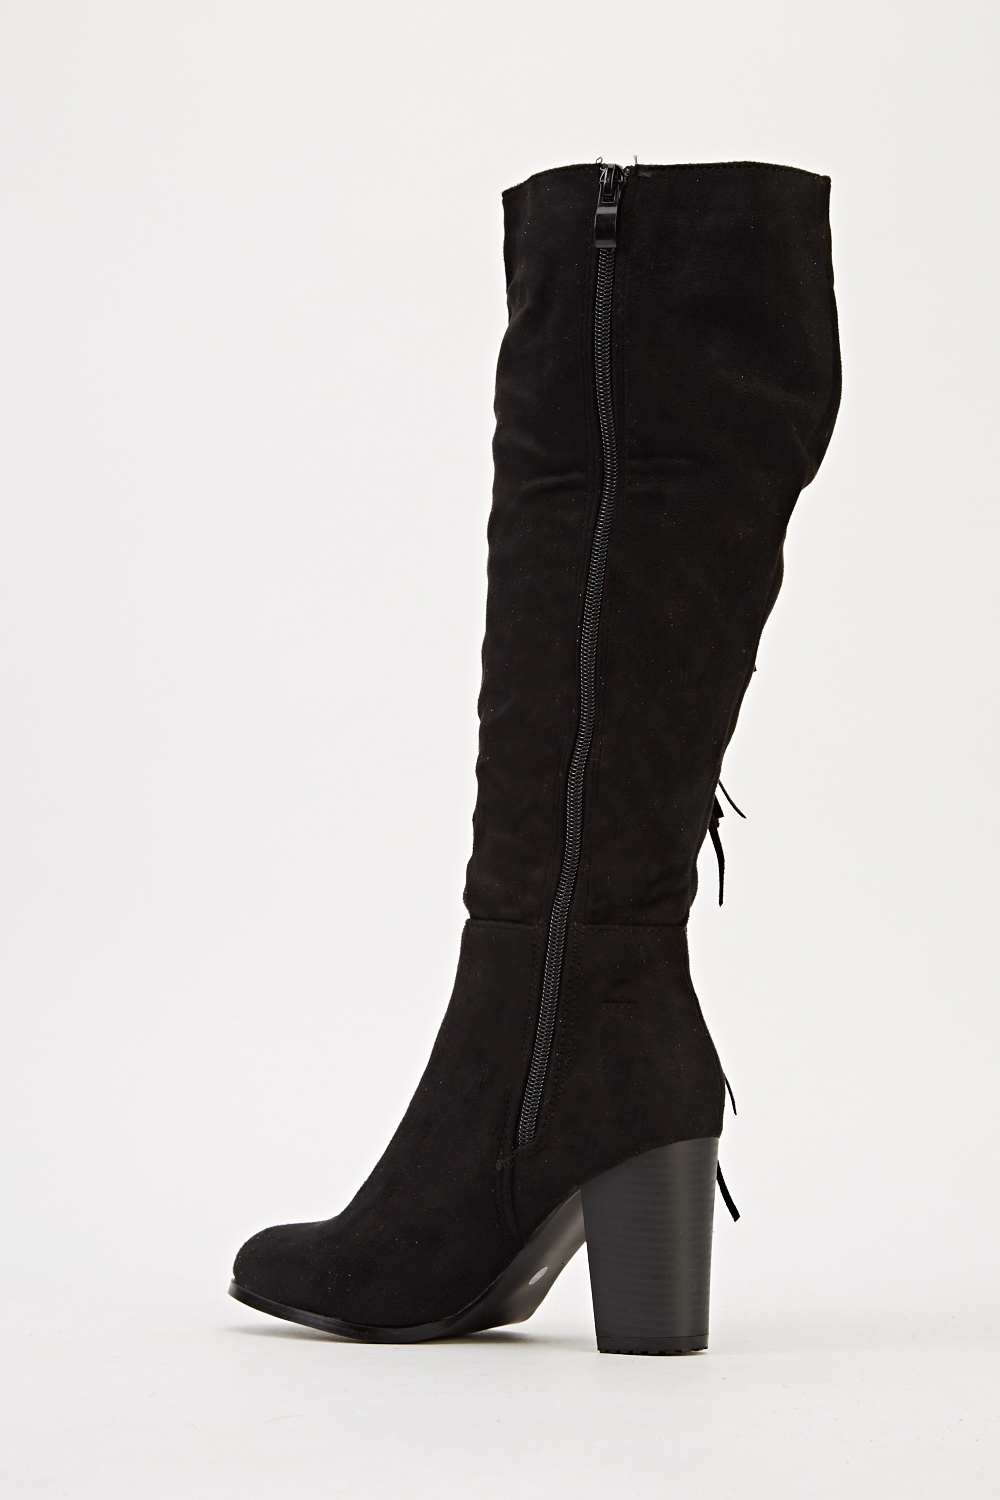 fringed side knee high boots just 163 5